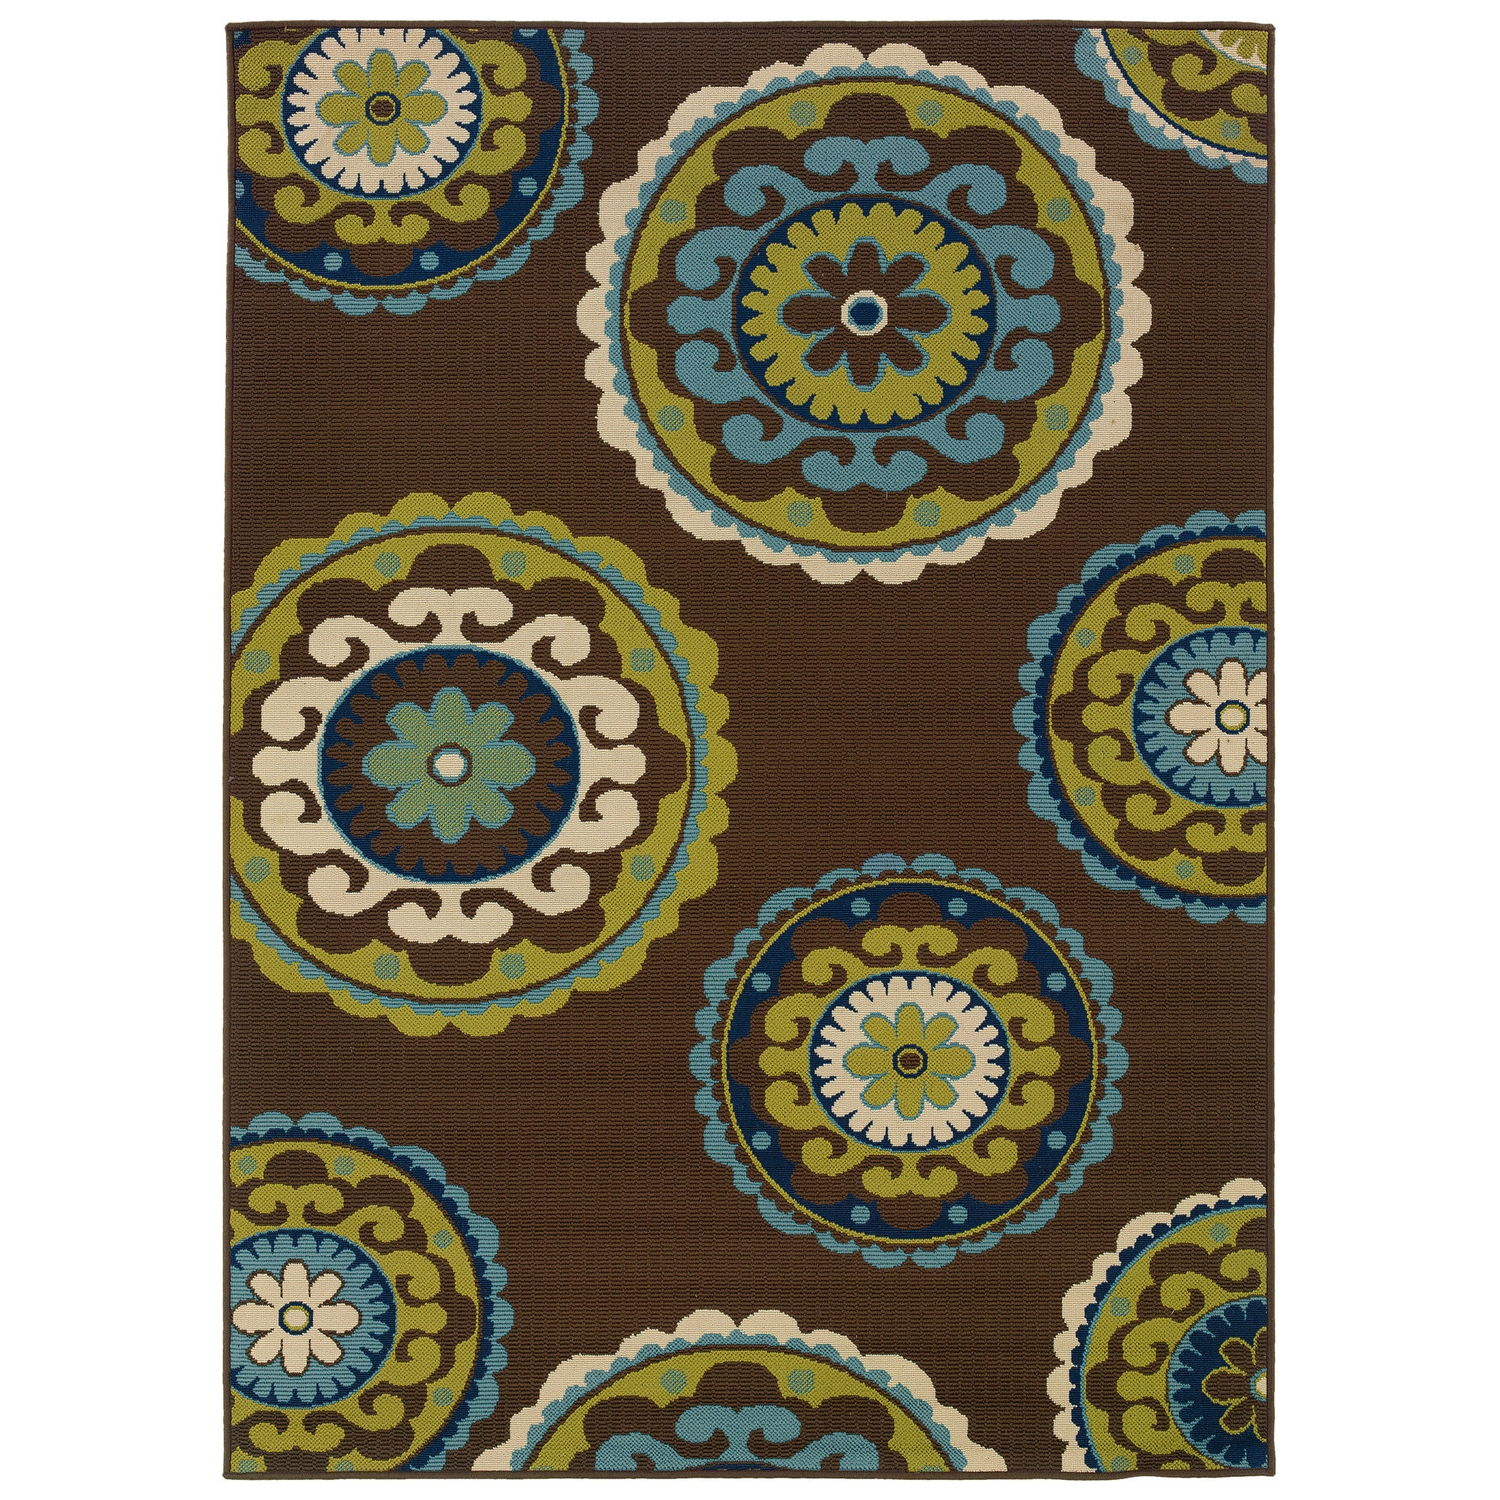 7'10 x 10'10 Outdoor/Indoor Area Rug in Brown Teal, Green Yellow Circles, CBG226541 :  This 7'10 x 10'10 Outdoor/Indoor Area Rug in Brown Teal, Green Yellow Circles would be a great addition to your home. It is made by a woven technique and is made of 100% polypropylene material. Ideal for any modern setting, the Rug has a lively and vibrant floral design spread over it. Being water repellent and mildew resistant, this versatile rug can be used indoors as well as outdoors. So it can placed in your living room, bedroom, kitchen area, on your terrace under the wicker table or simply outside on your patio. Thanks to its 100% polypropylene material, this ivory/green carpet from the Caspian collection is sure to stay in the family for years. A machine construction also adds to the durability of this rug. Plus, it is stain and fade resistant, so the rug looks new for long. Thus it can be said that, this woven rug is extremely luxurious and reliable. Remember to use this whimsical Rug with a backing pad to avoid any accidental slips or falls. Using a rug pad also improves the life of your rug and protects your flooring. Vacuum cleaning this ivory/green rug at regular intervals helps it look new and lush at all times. In case your rug appears heavily soiled, getting it professional cleaned is essential. Available in different shapes and sizes, this beautiful rug can easily meet all your styling requirements.